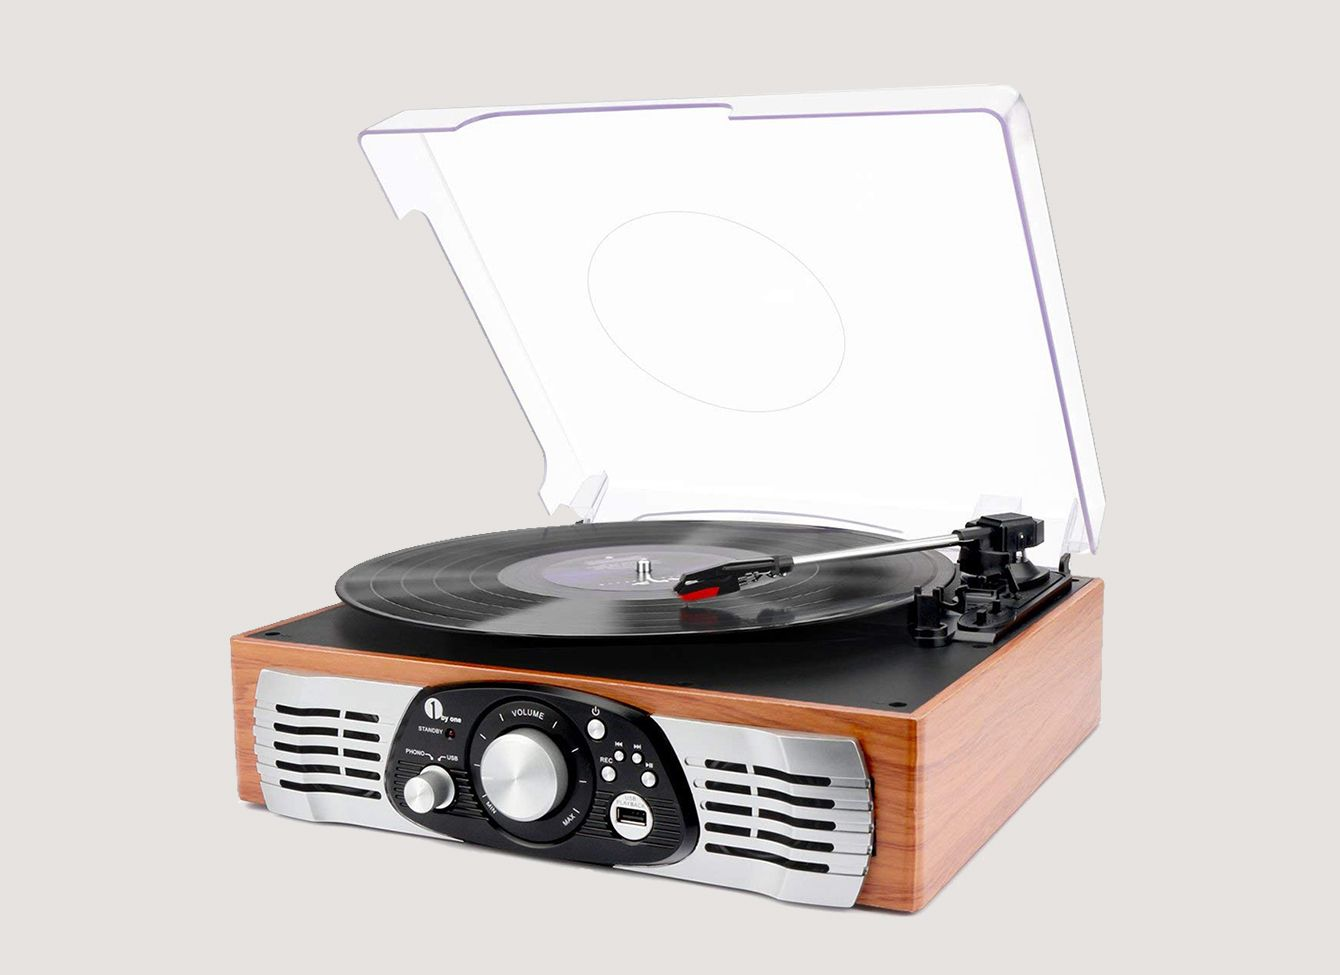 1byone Belt-Drive 3-Speed Stereo Turntable With Built-in Speakers, Natural Wood